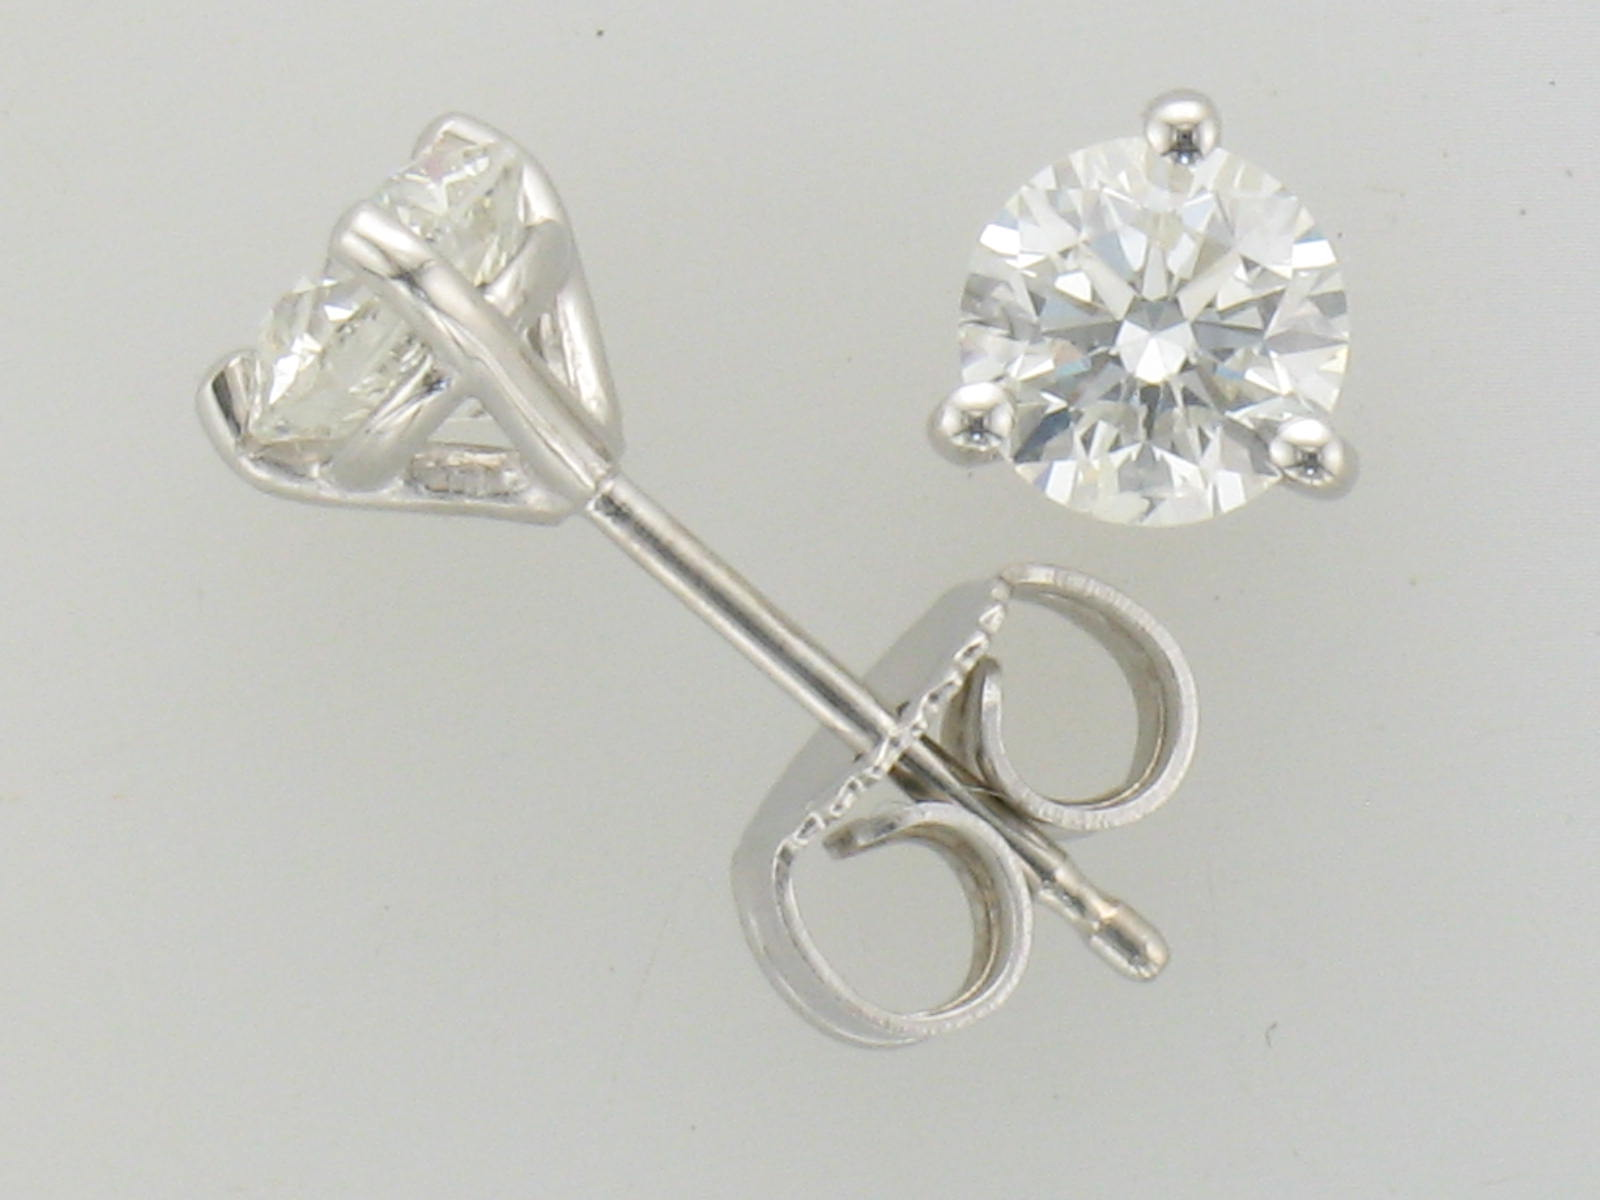 solitaire martini studs earrings diamond round white stud set classic quality products carat gold prong cirelli